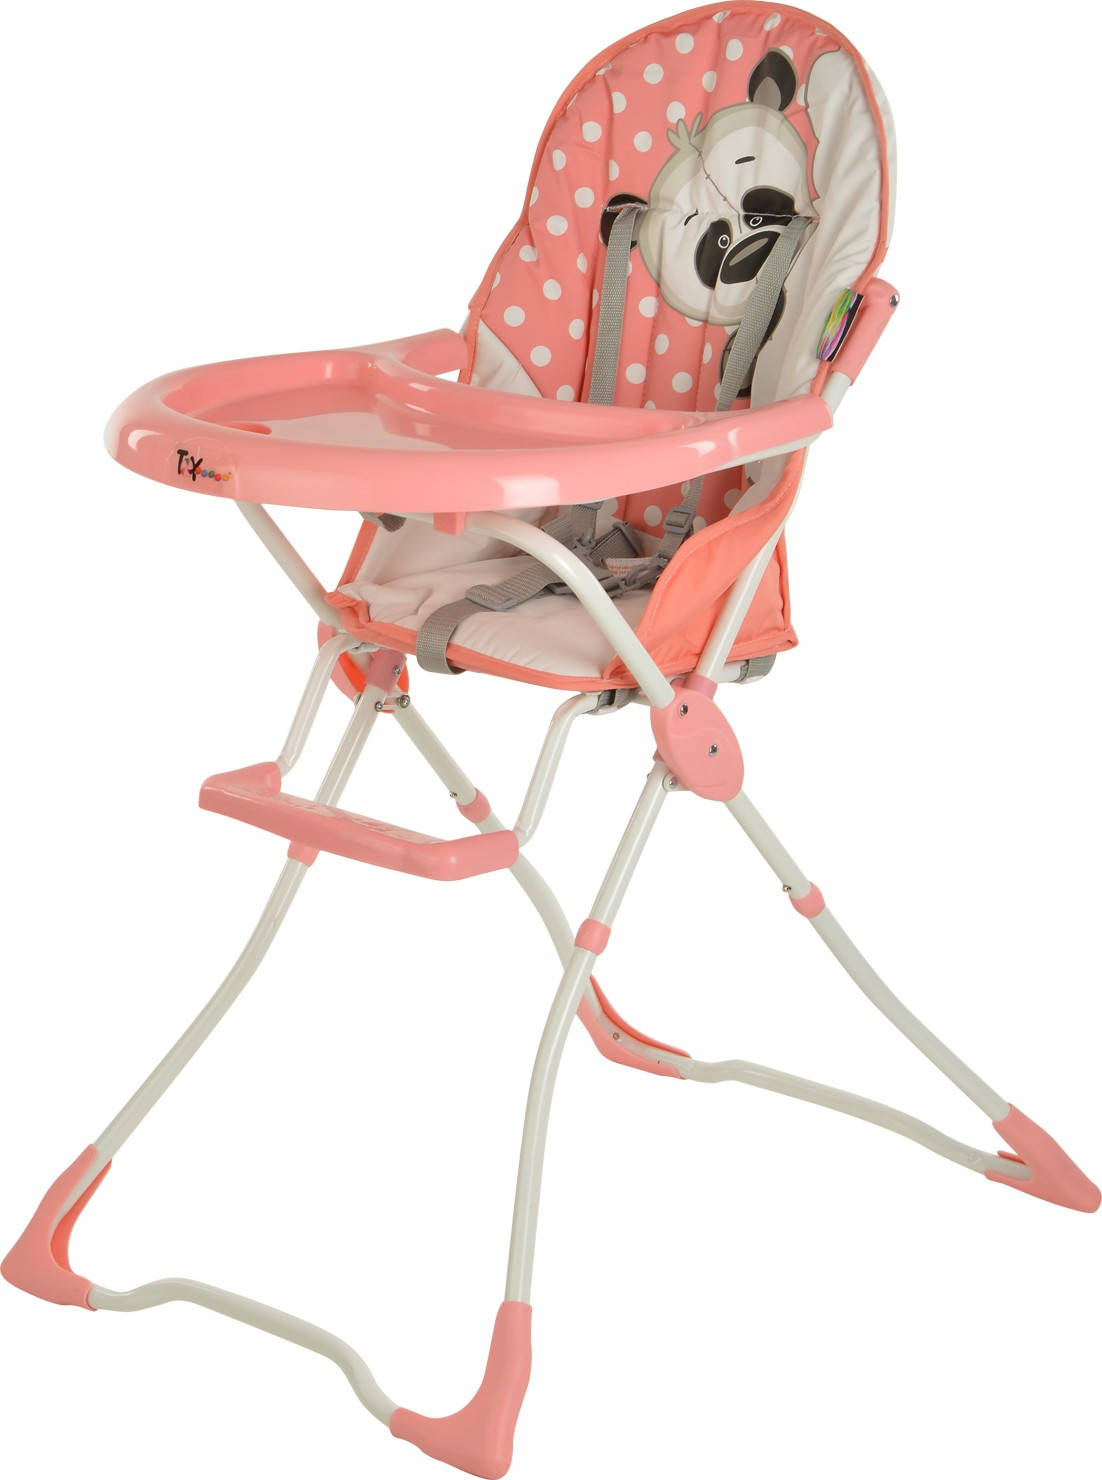 Deals | Kids Furniture Chicco, Toyhouse.